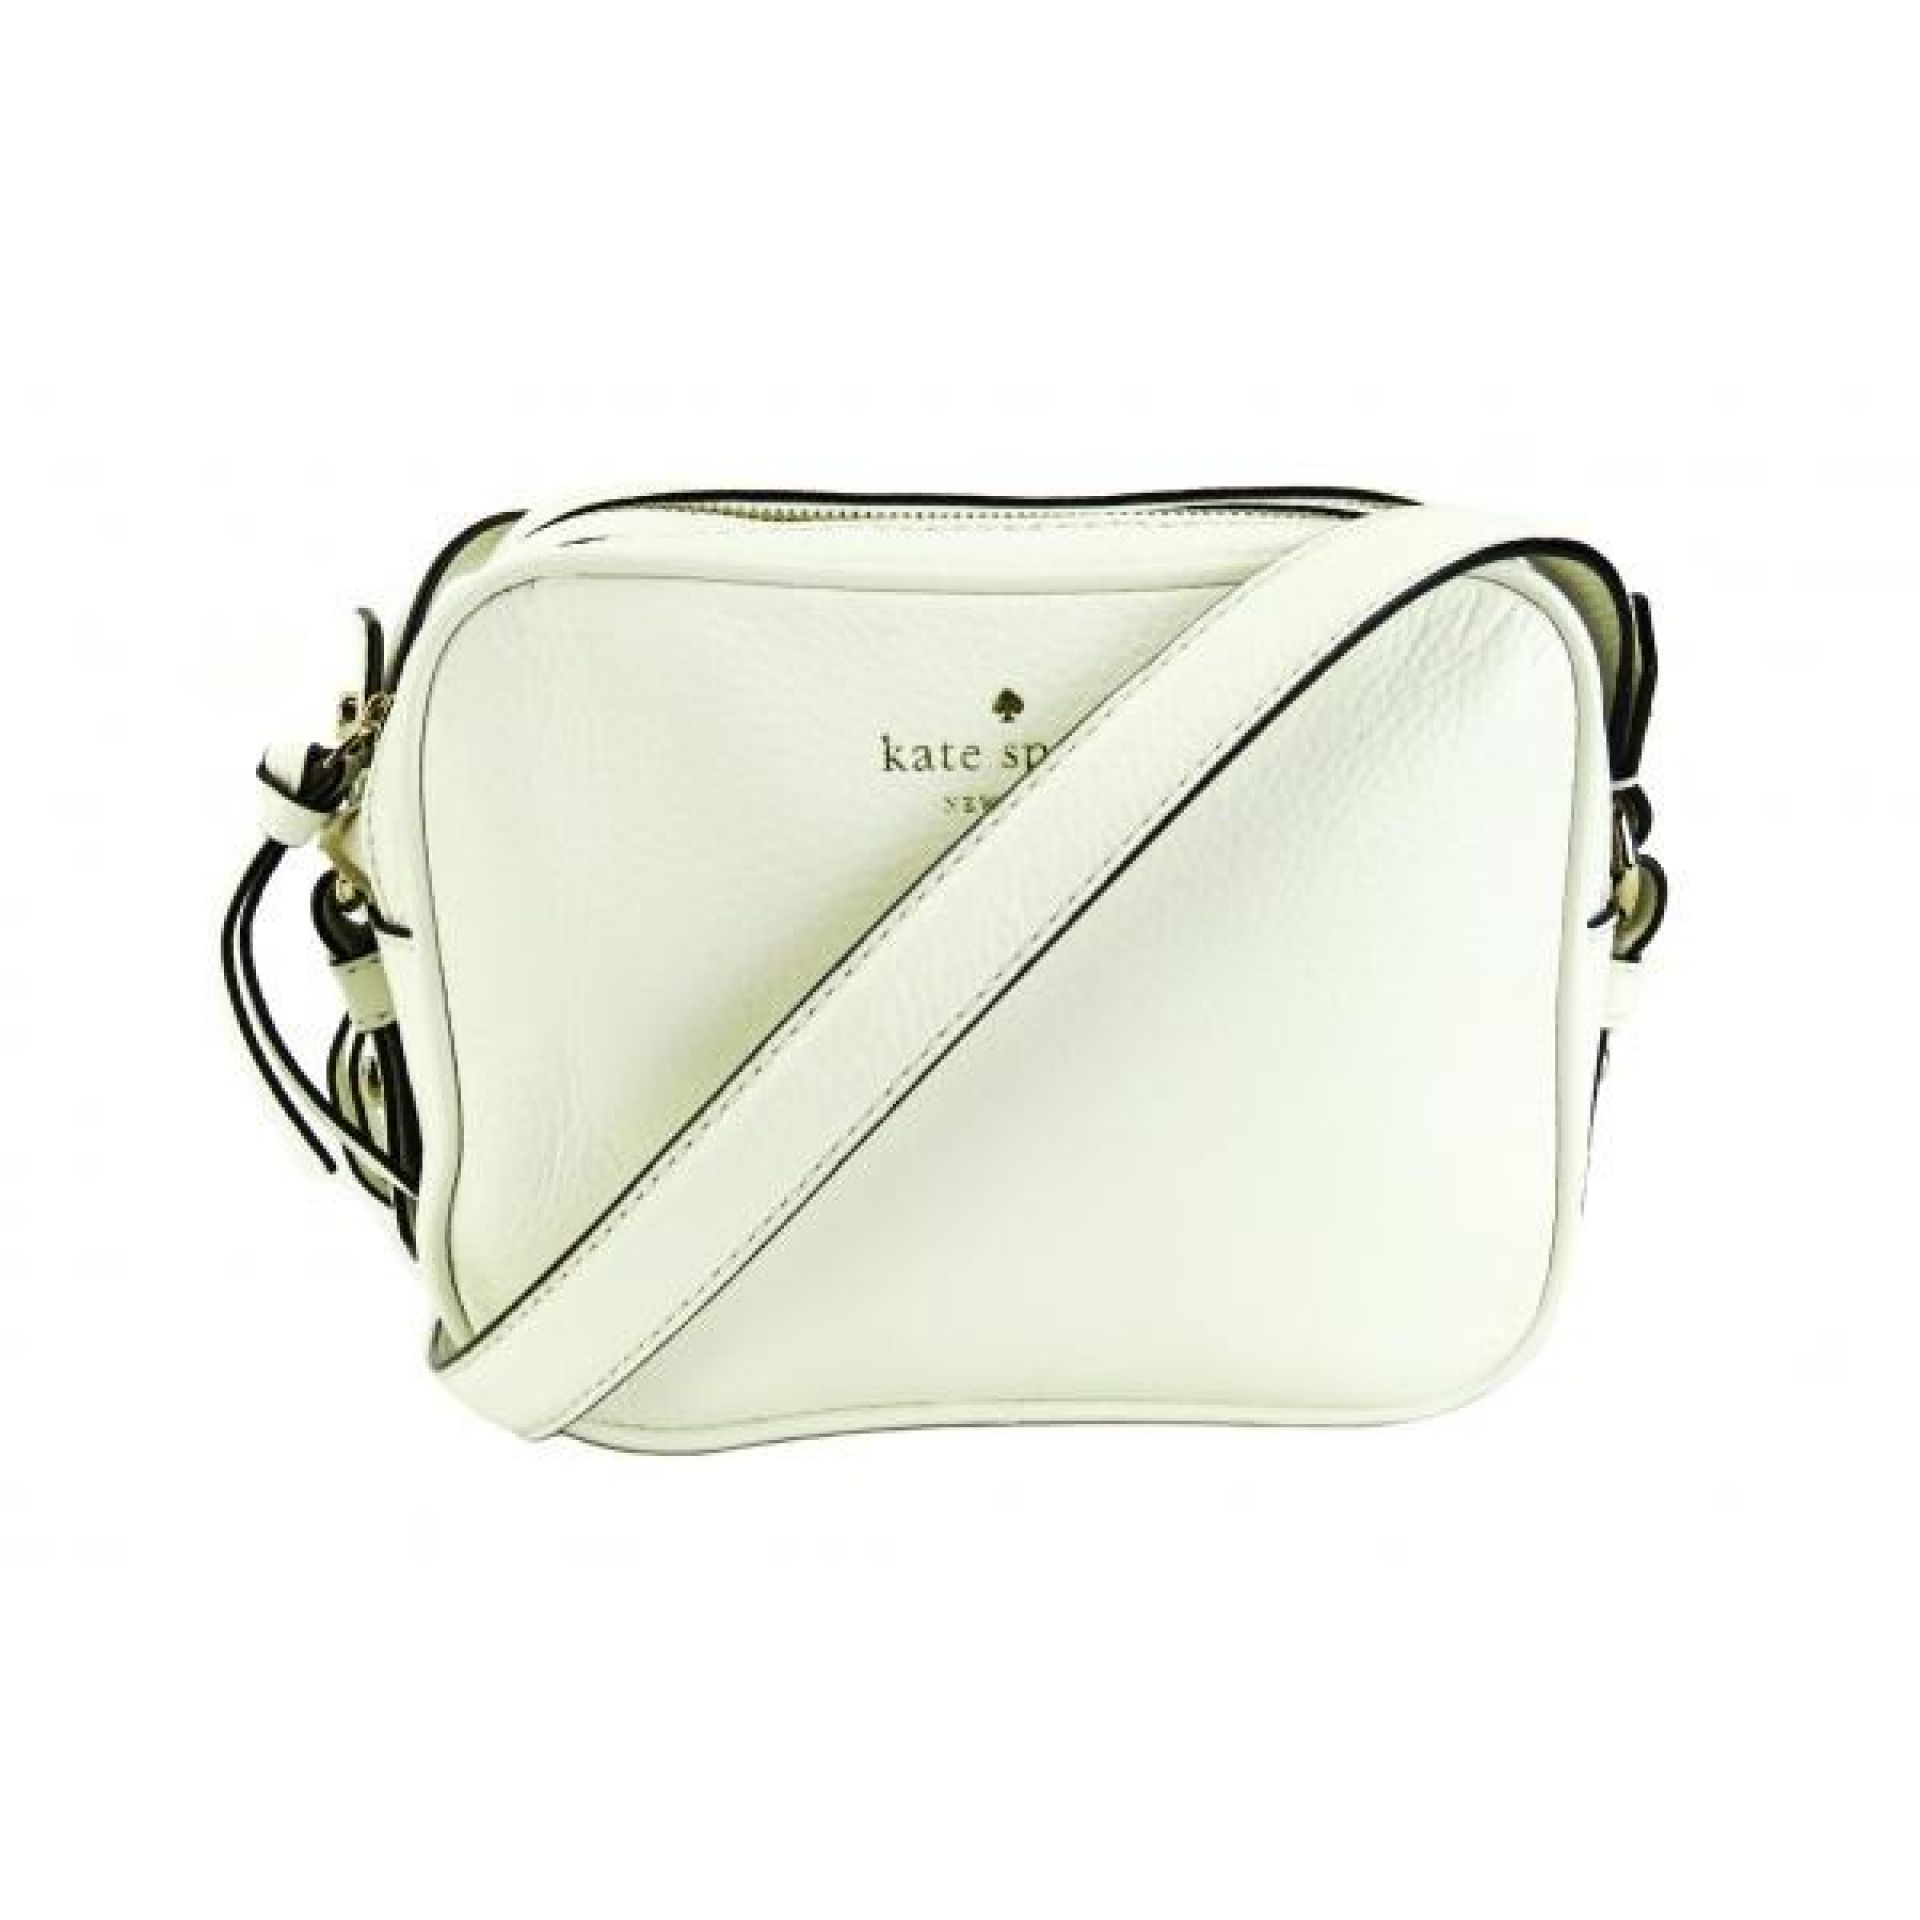 Kate Spade White Pebble Leather Mulberry Street Pyper Crossbody Bag